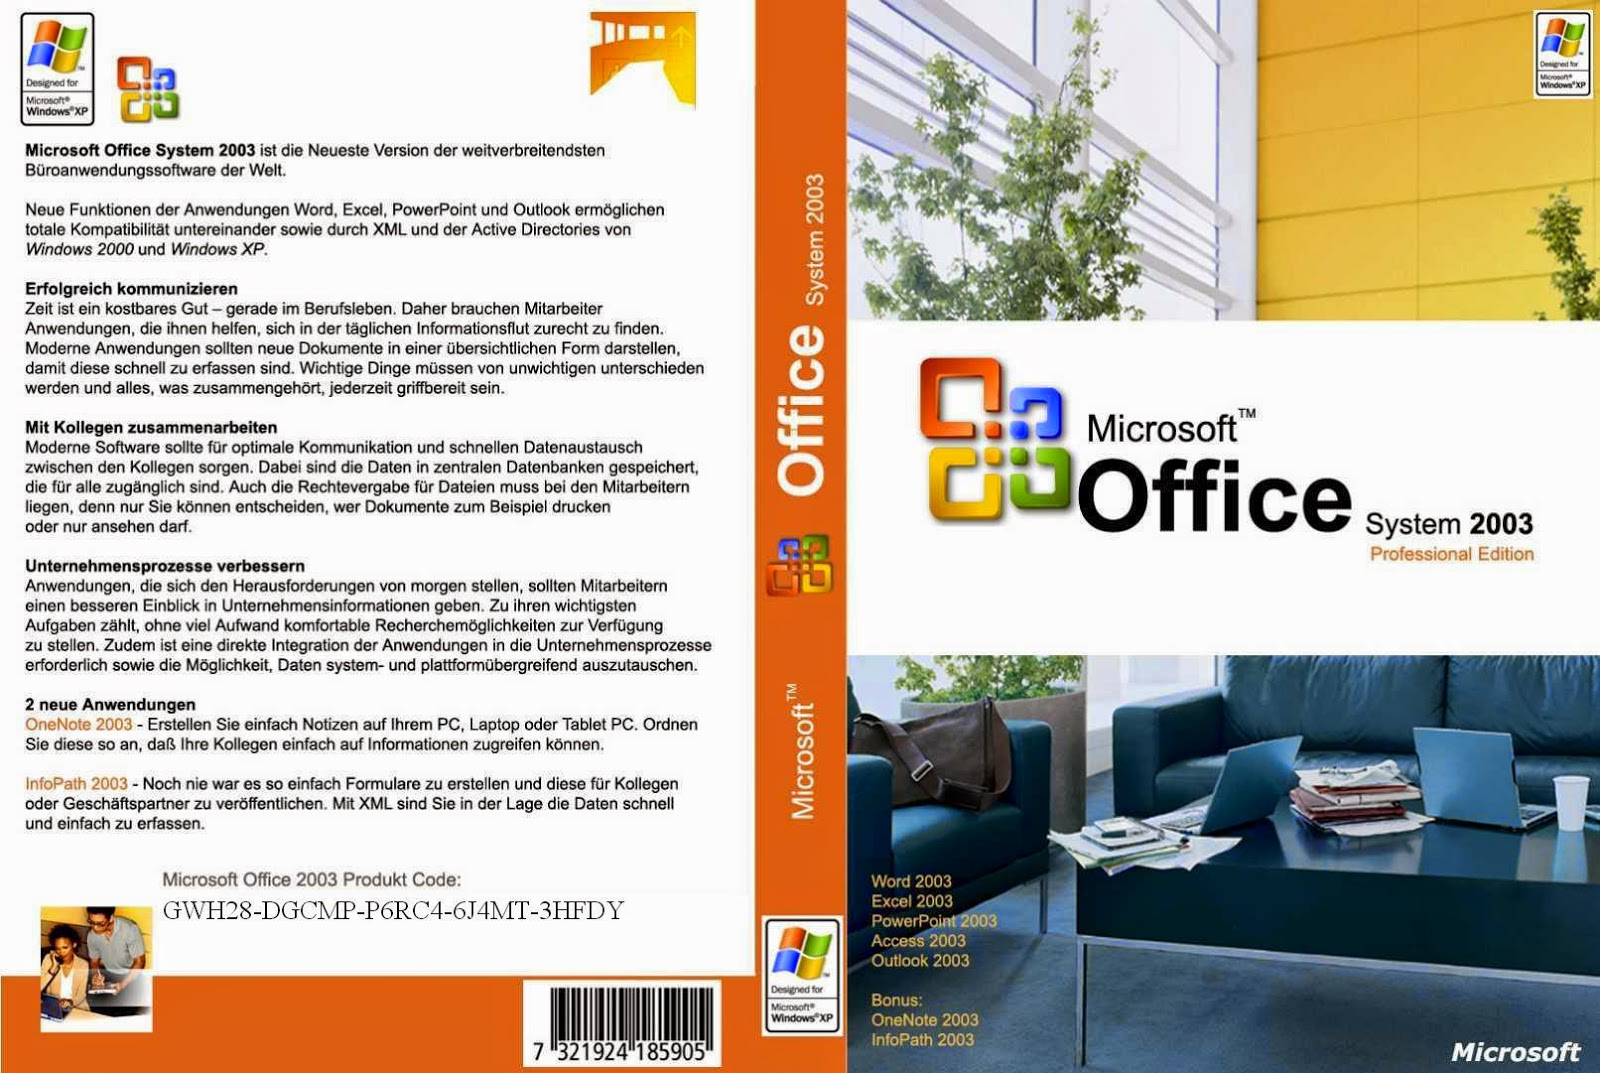 Microsoft office professional edition 2003 iso | Microsoft Office